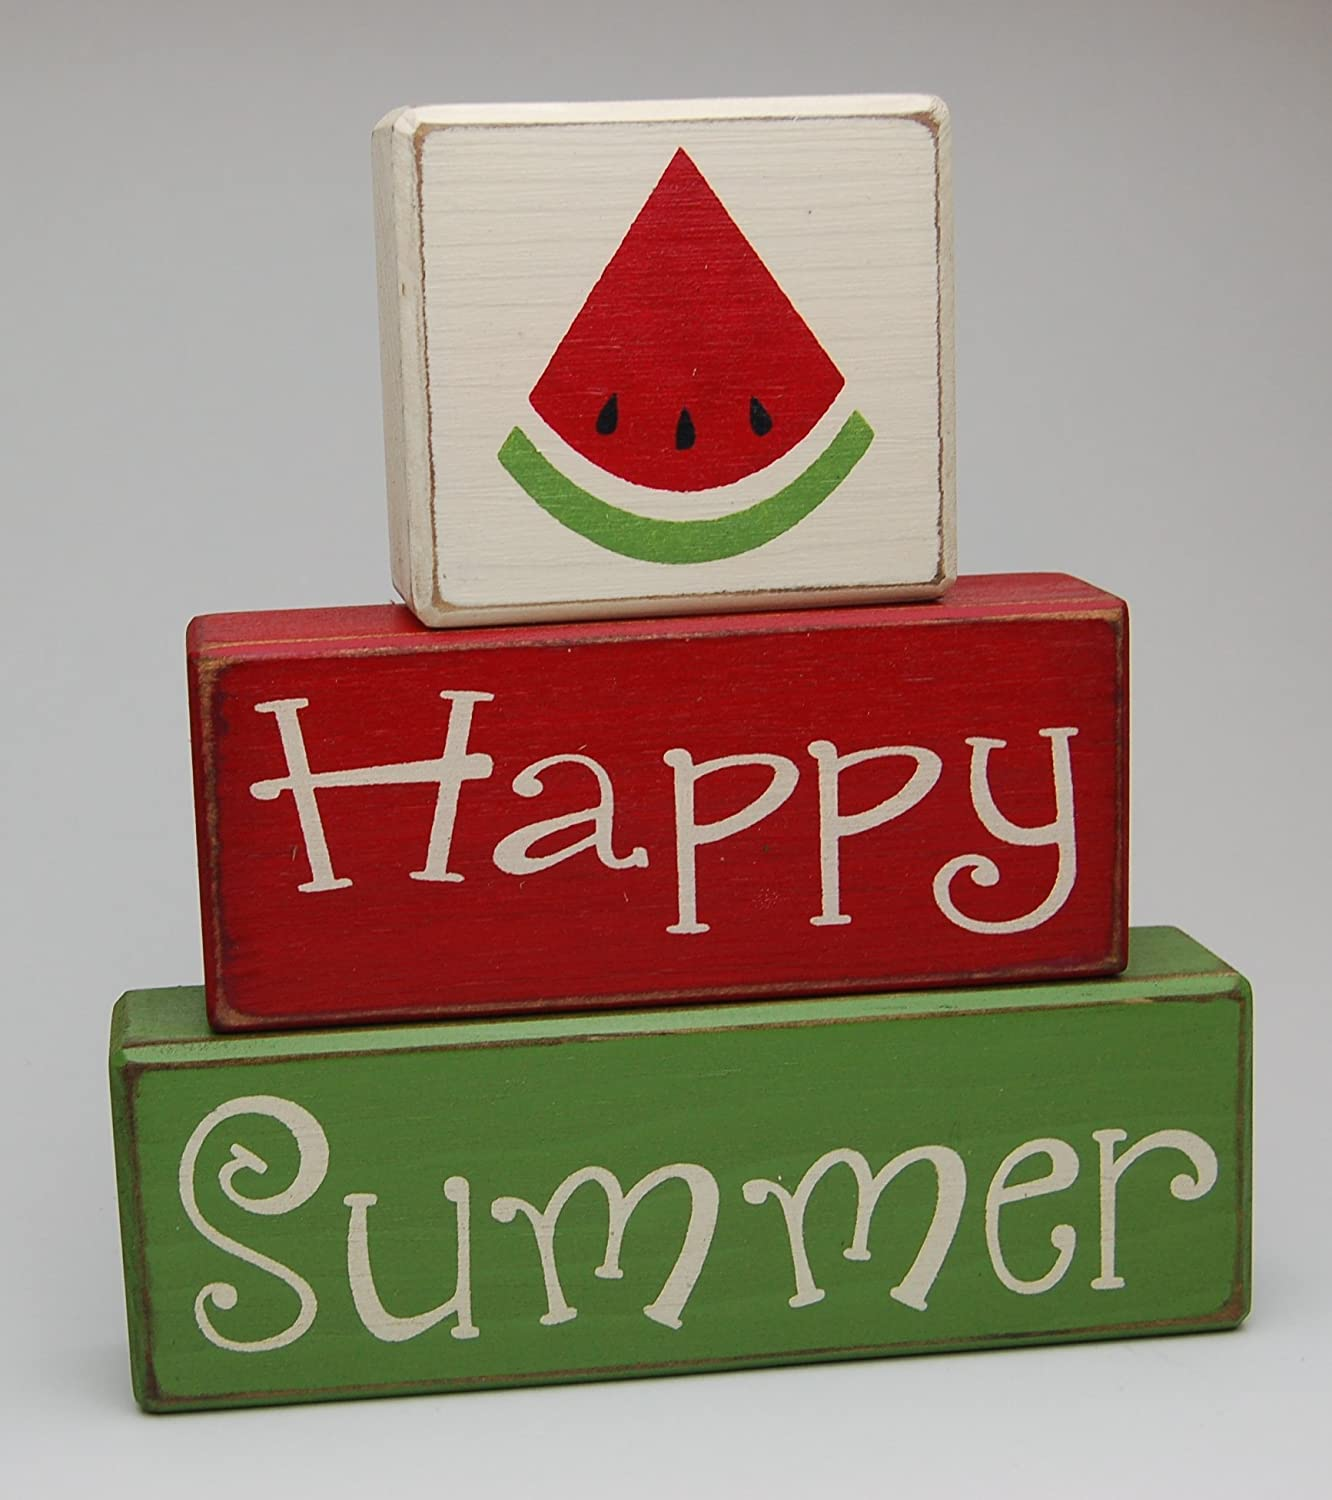 Happy Summer Watermelon - 2021 new Country Flower Pineapple Sale item Primitive